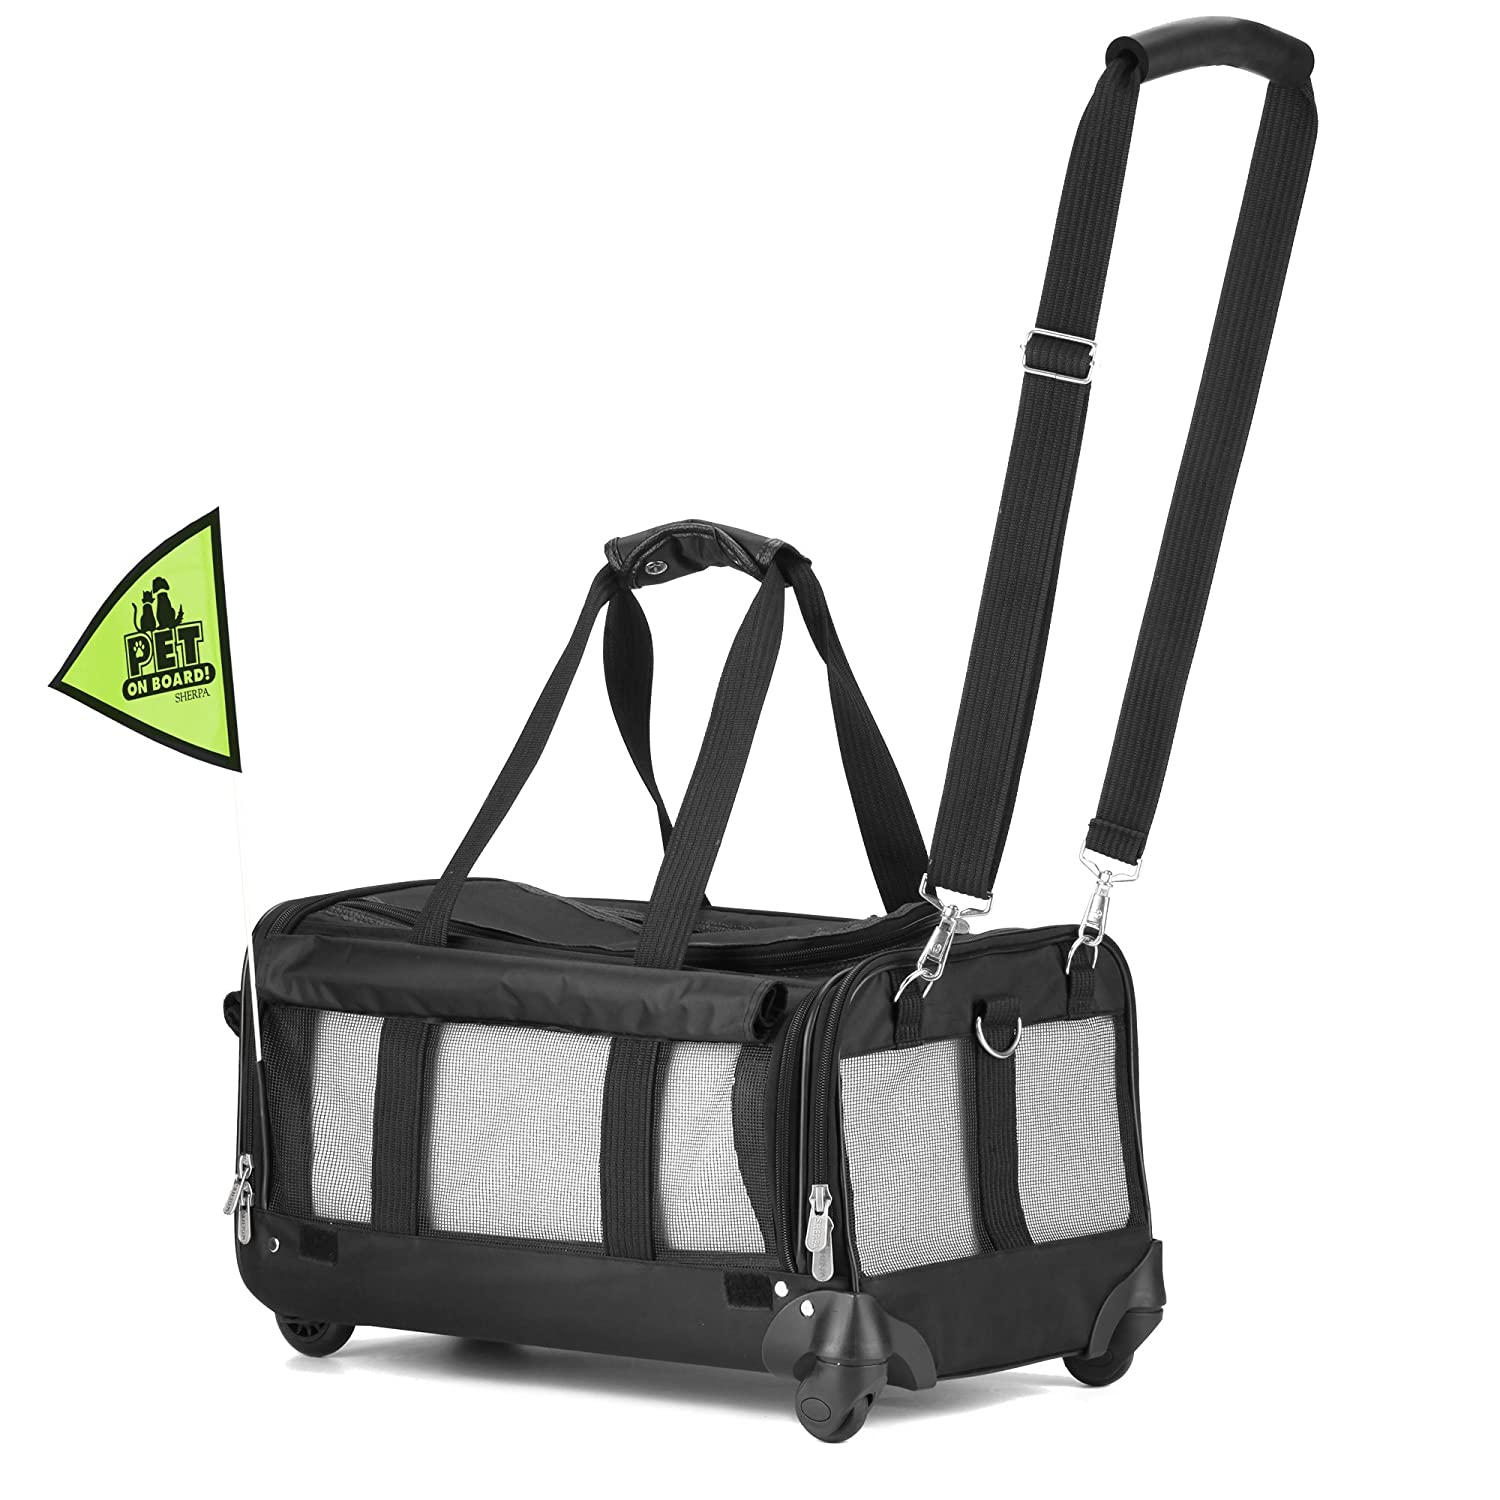 Sherpa on Wheels Pet Carrier, Black World Wise Pooch Planet Q98792